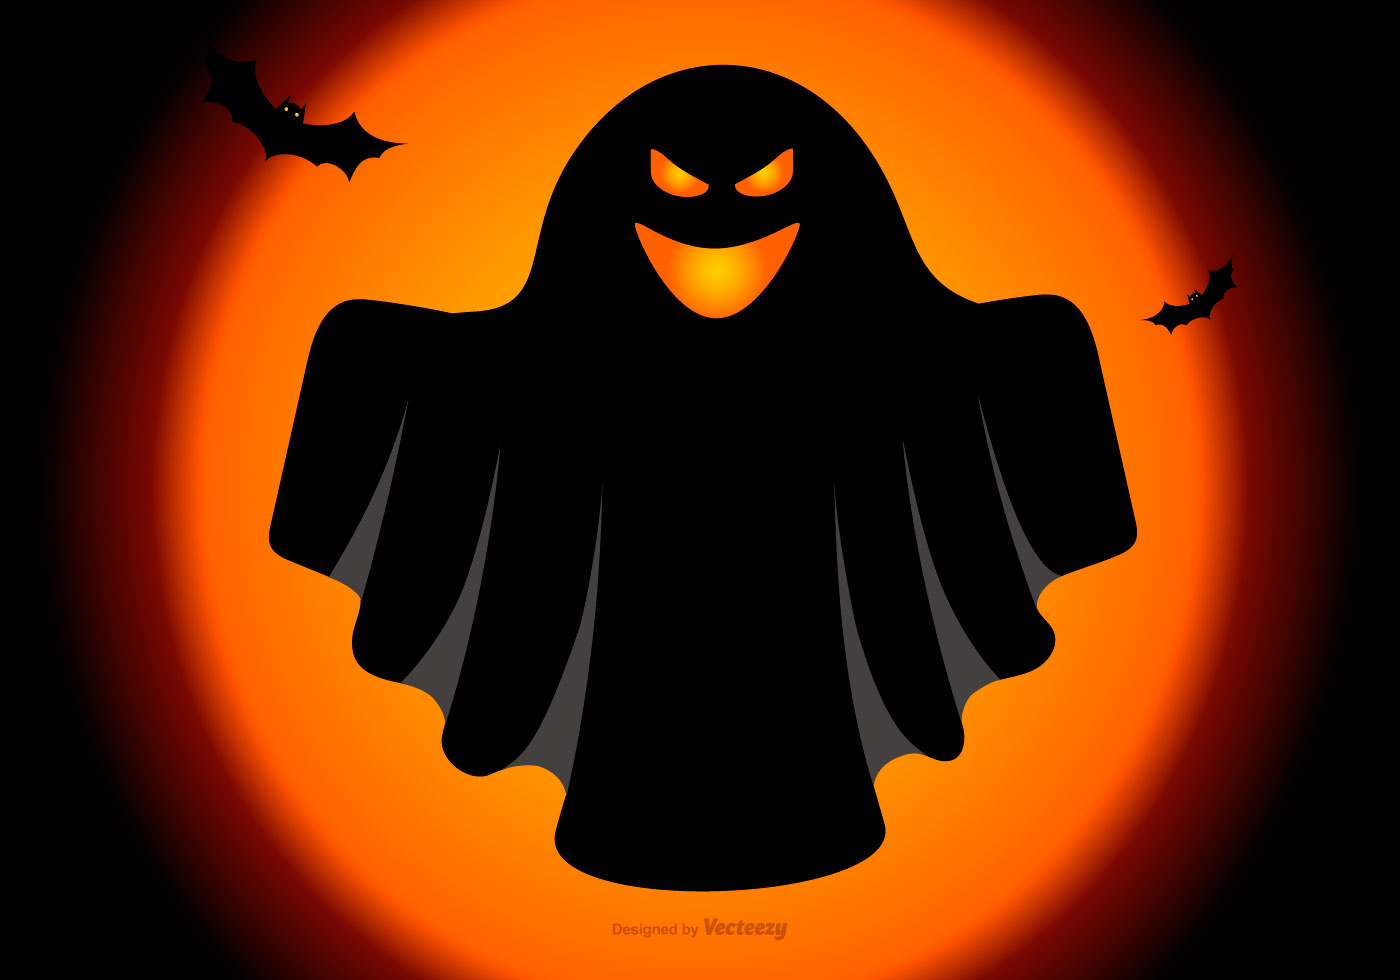 Spooky Halloween Ghost Illustration - Download Free Vector ...